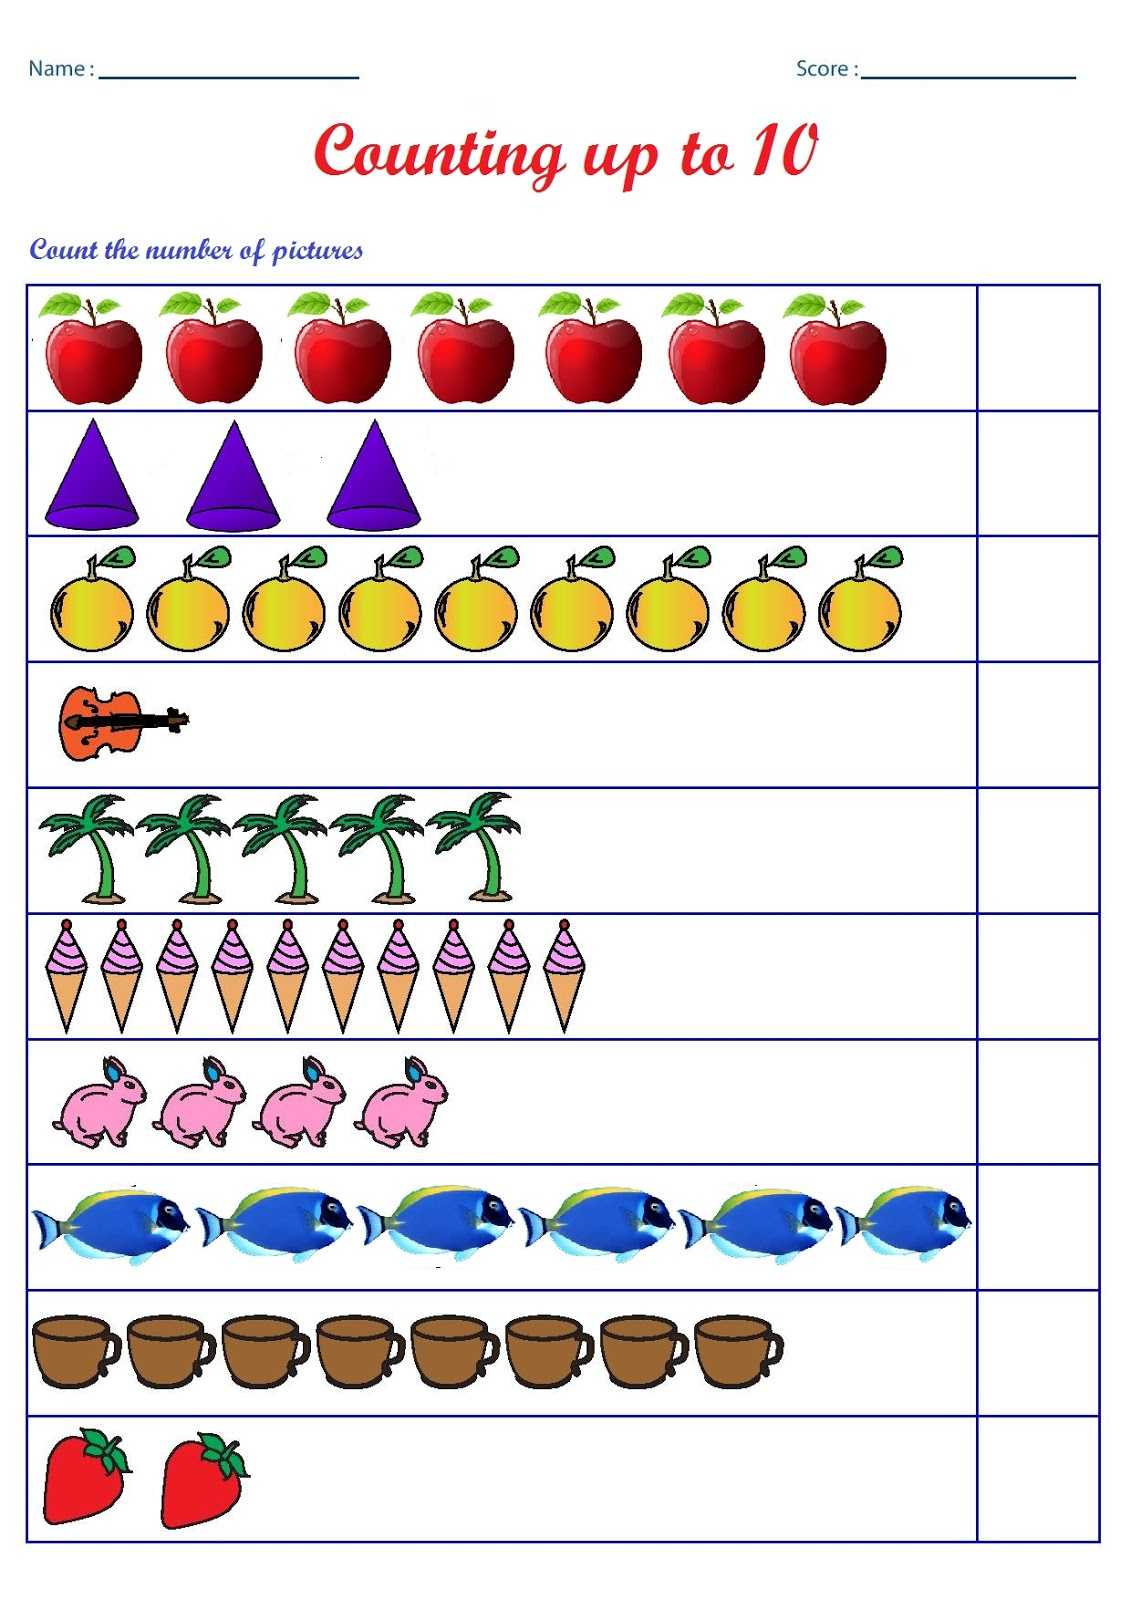 Pin By Sarah Tawfik On Counting Worksheets